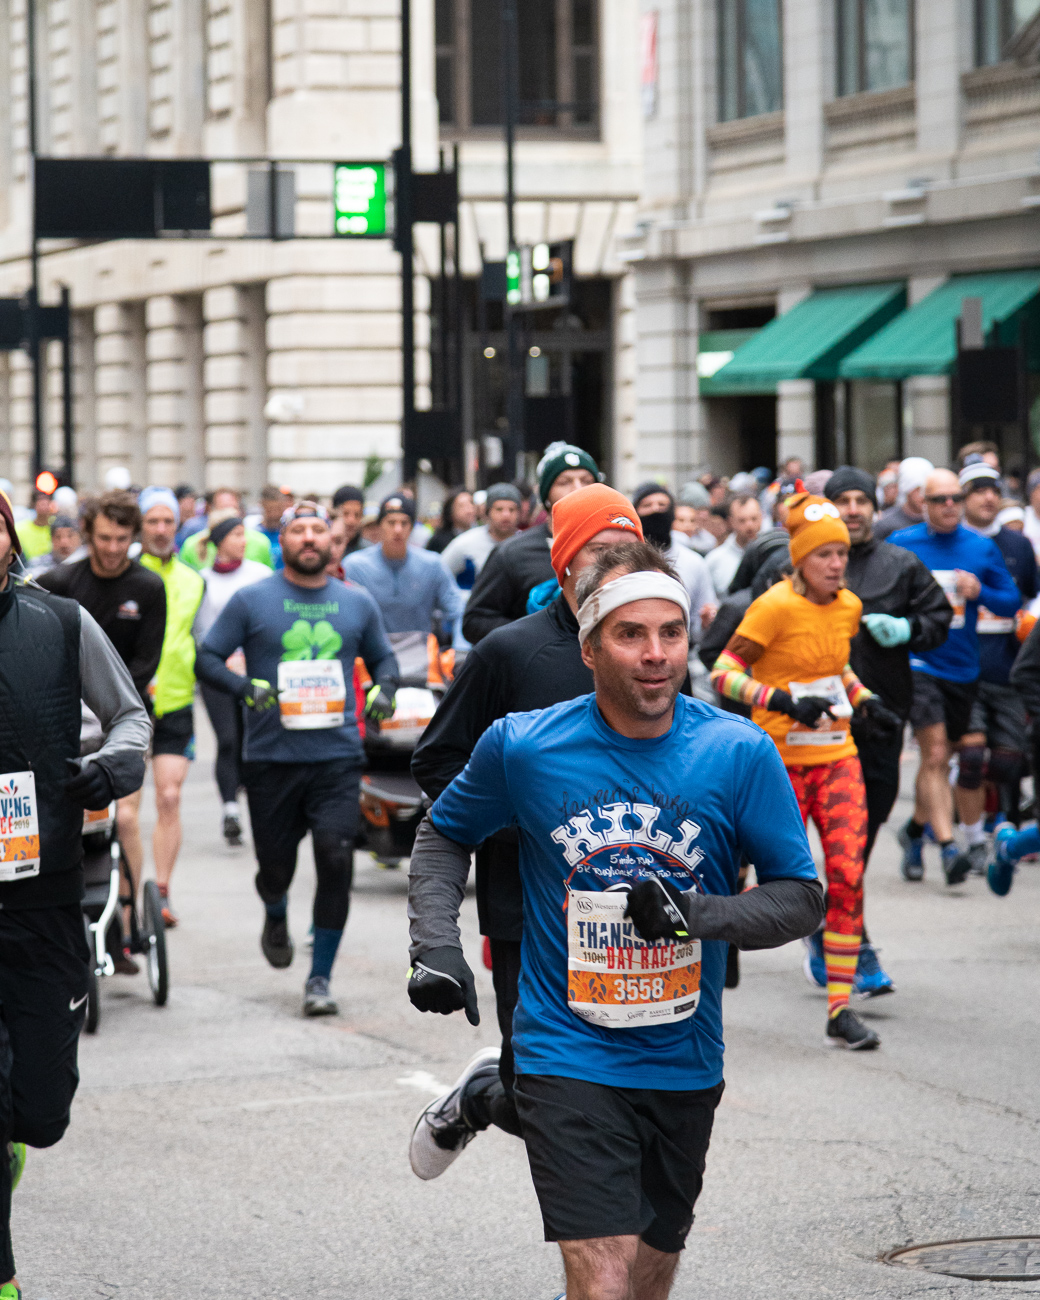 The 110th Annual Western and Southern Thanksgiving Day 10K Run/Walk was held on Thursday, Nov. 28, 2019. / Image: Phil Armstrong, Cincinnati Refined // Published: 11.28.19